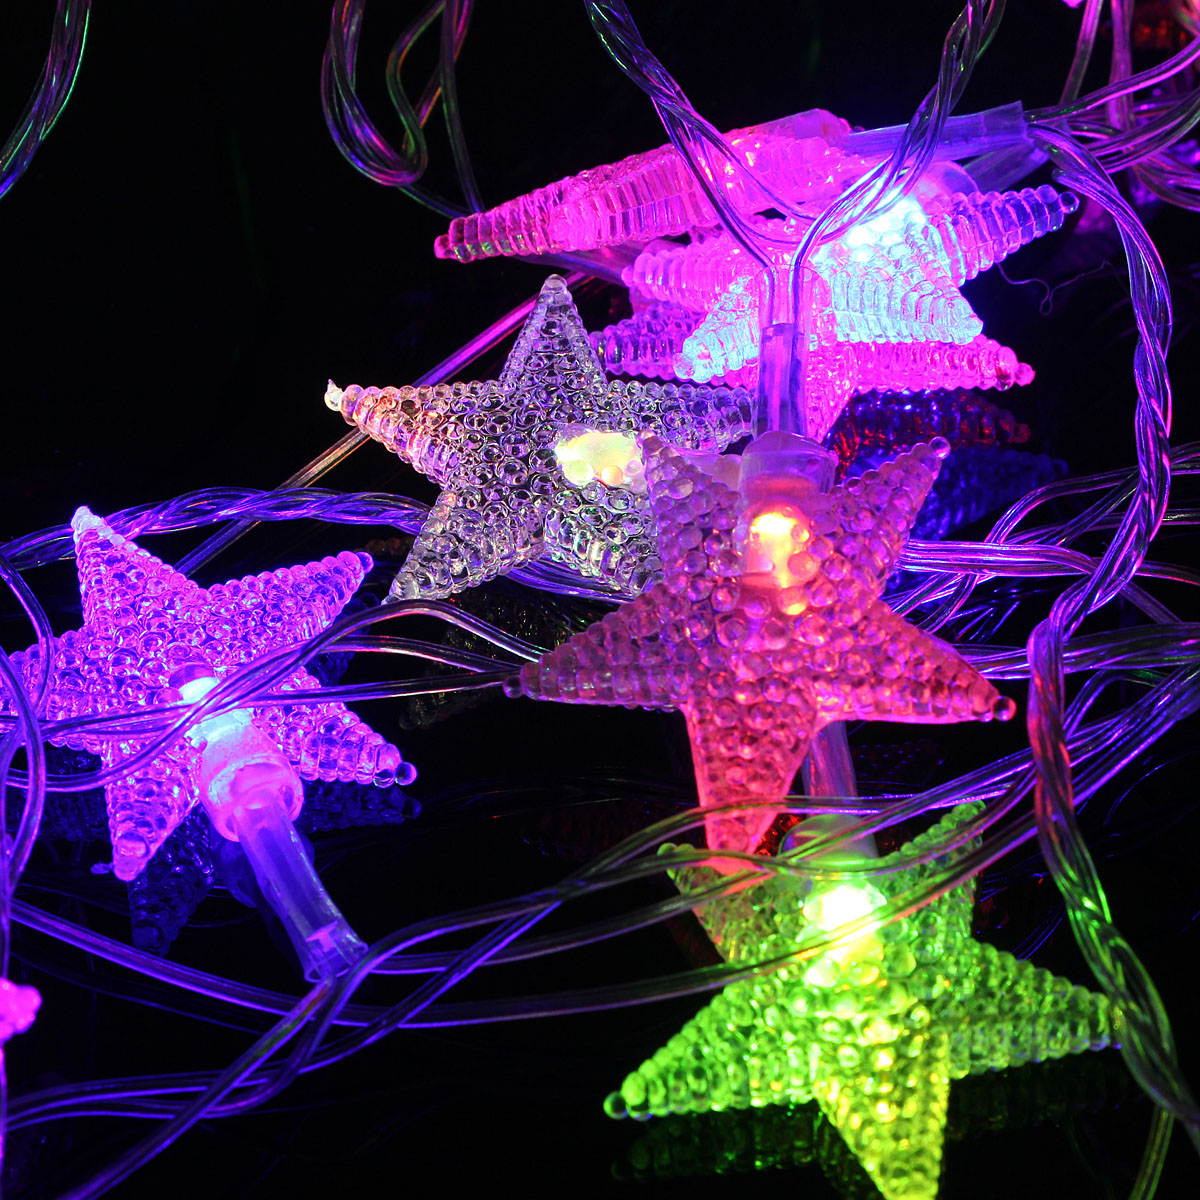 5M 28LED Five-pointed Star String Lights Christmas Holiday Night light Lamp for Home Garden Wedding Decoration